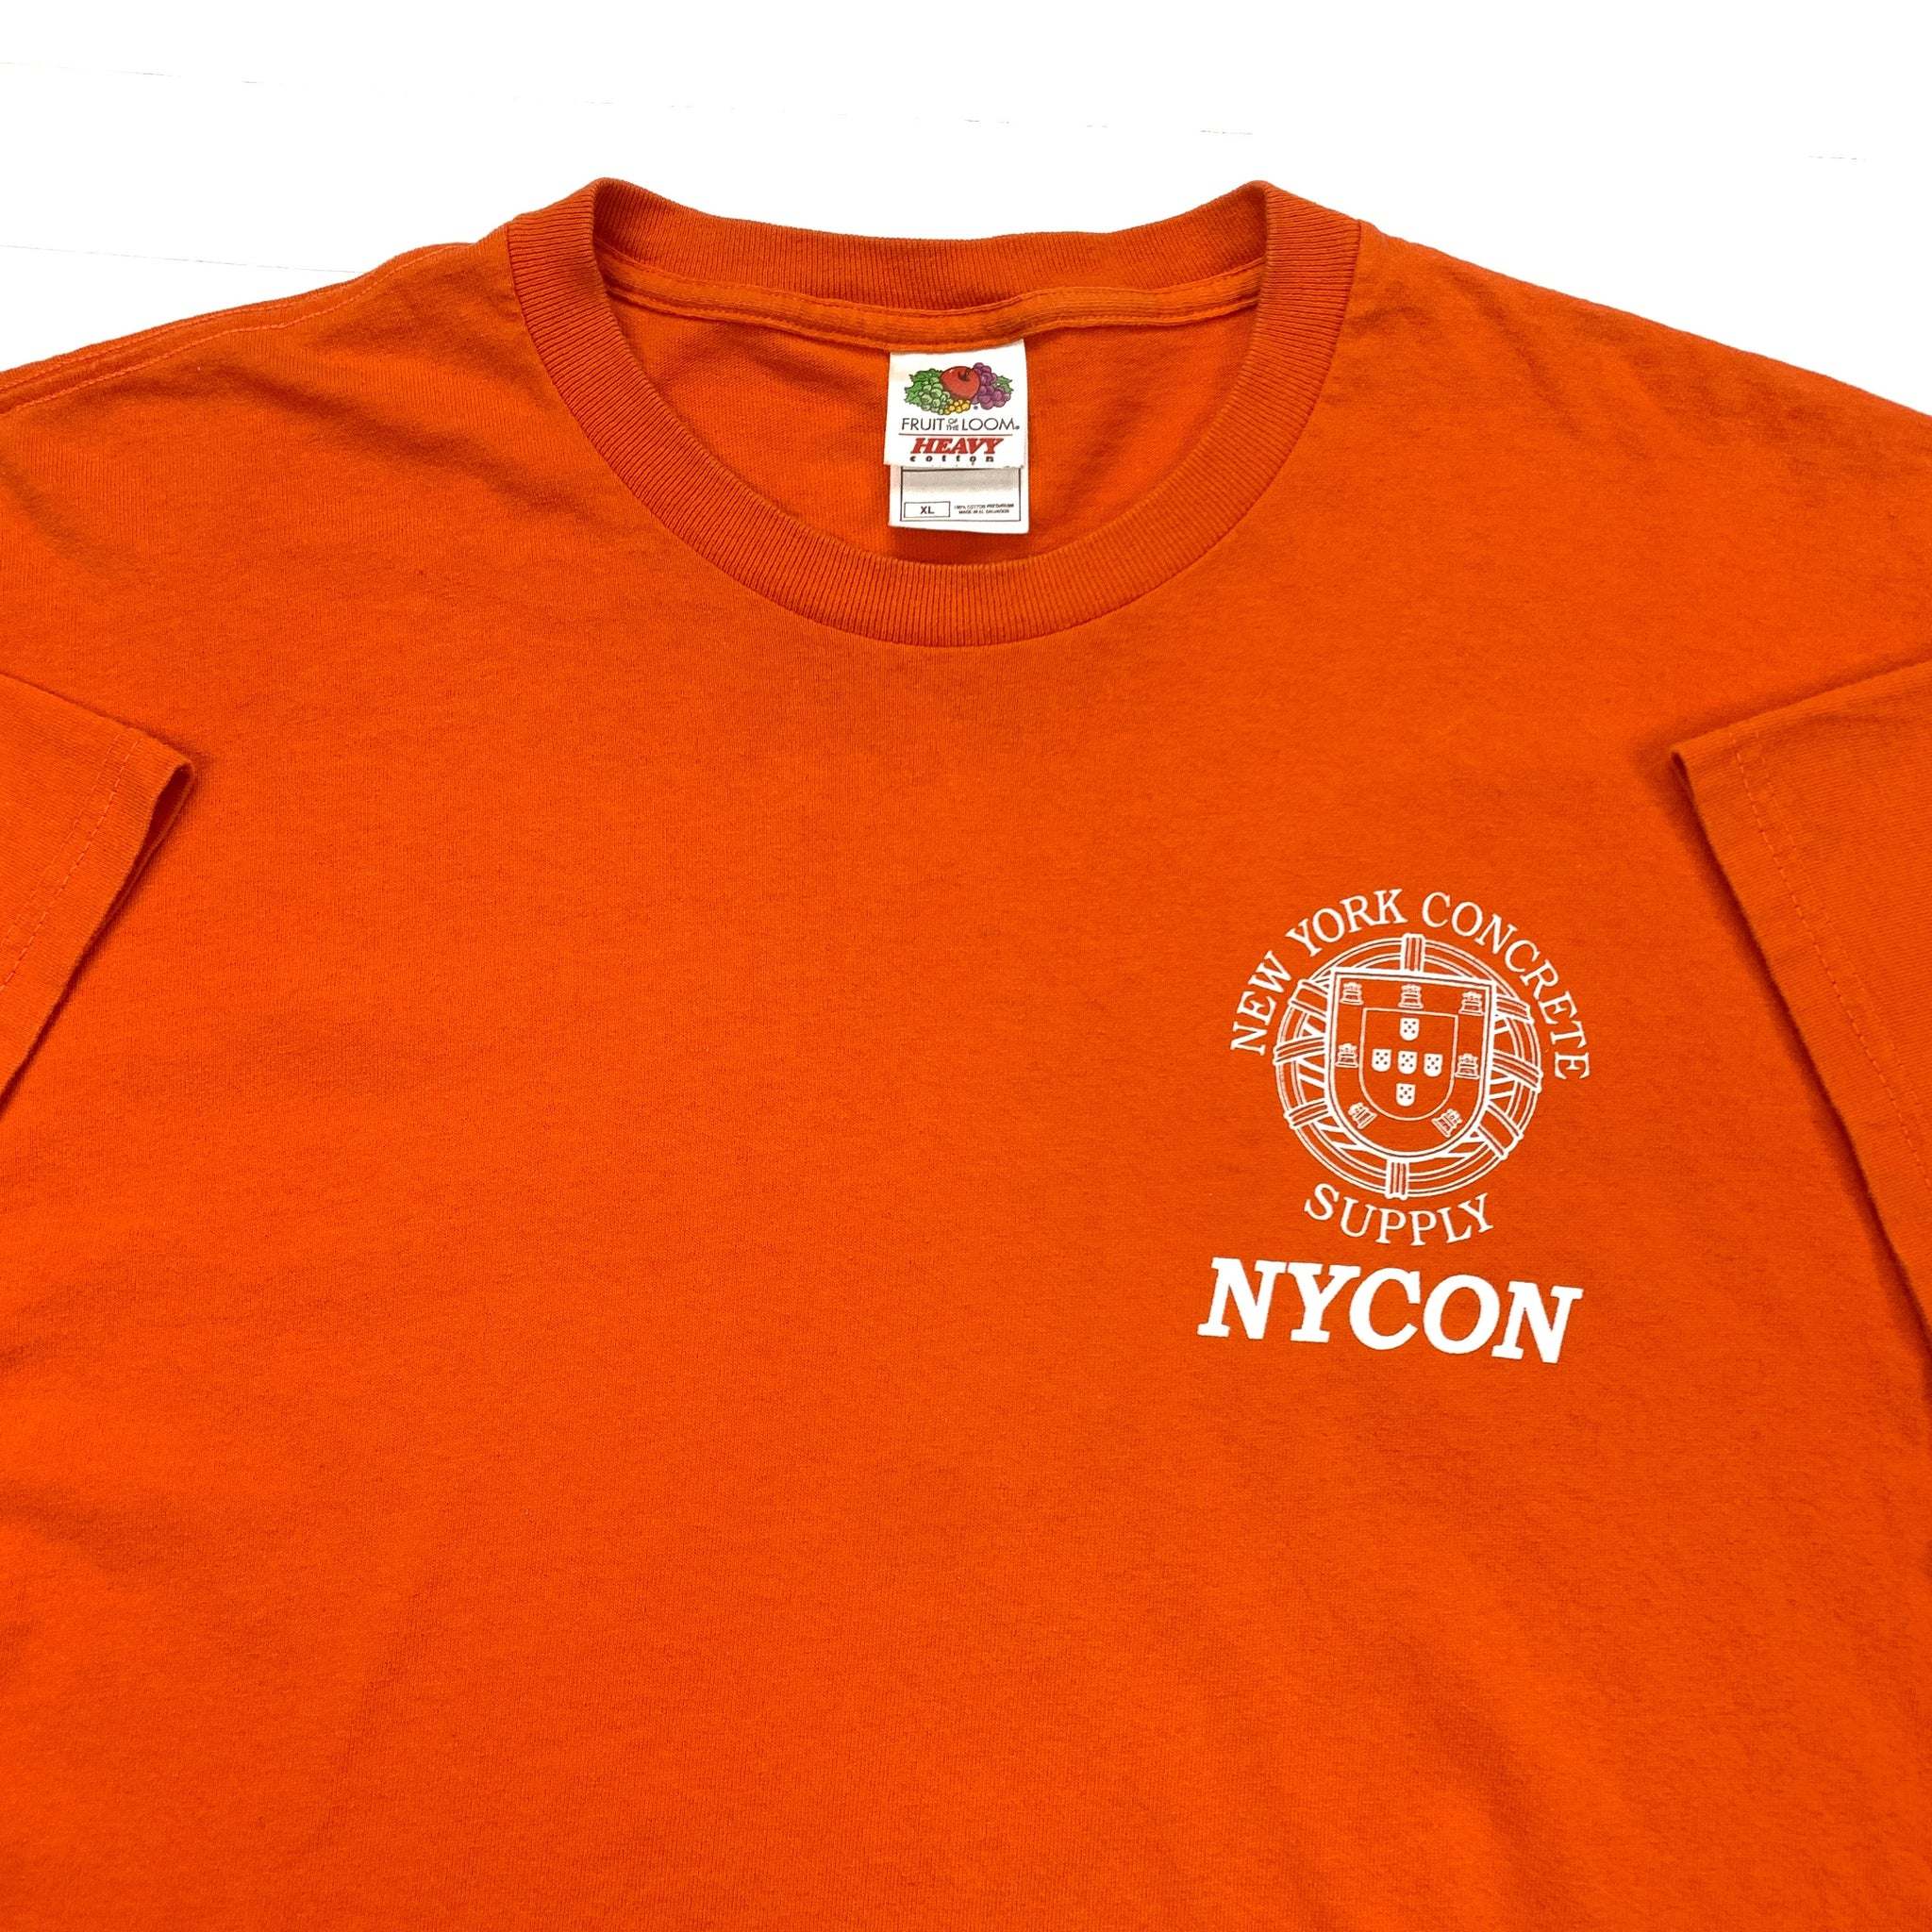 New York Concrete Tee (XL)